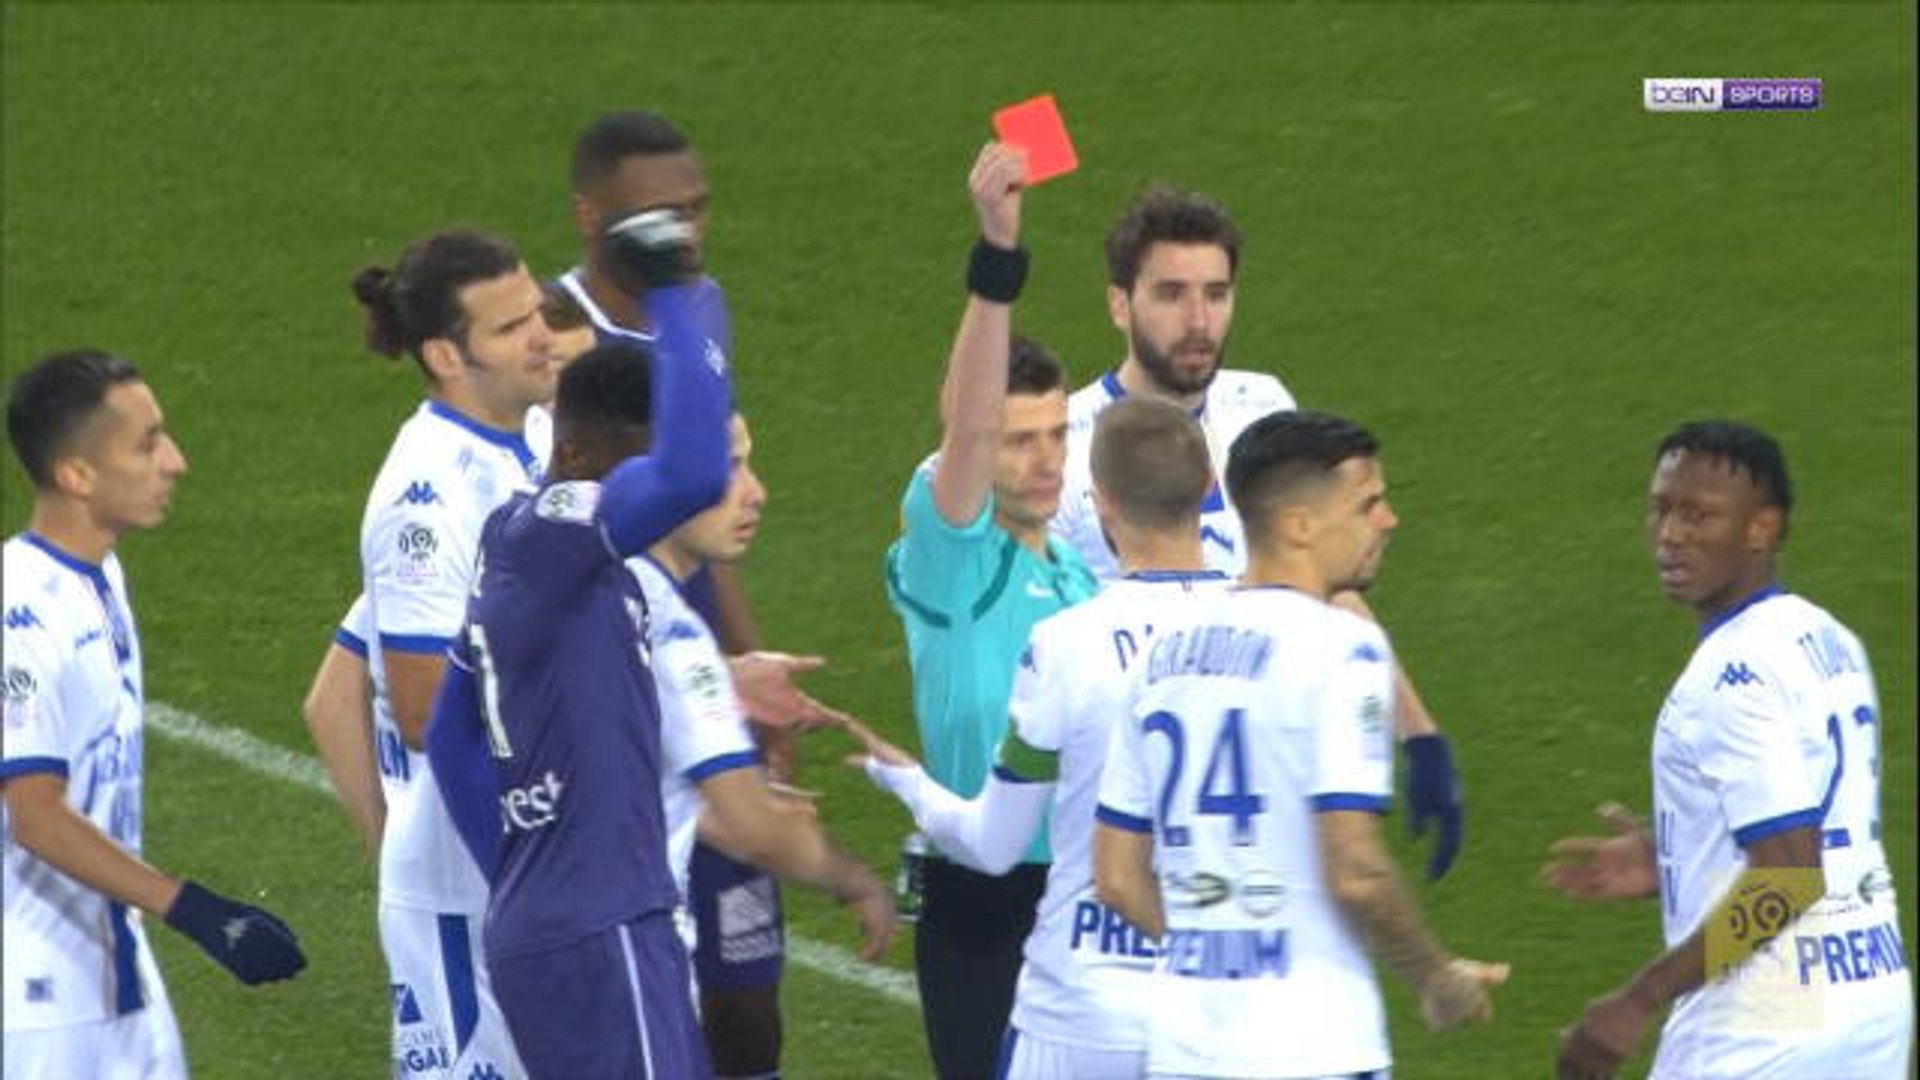 Football: Troyes defender sent off in third minute!